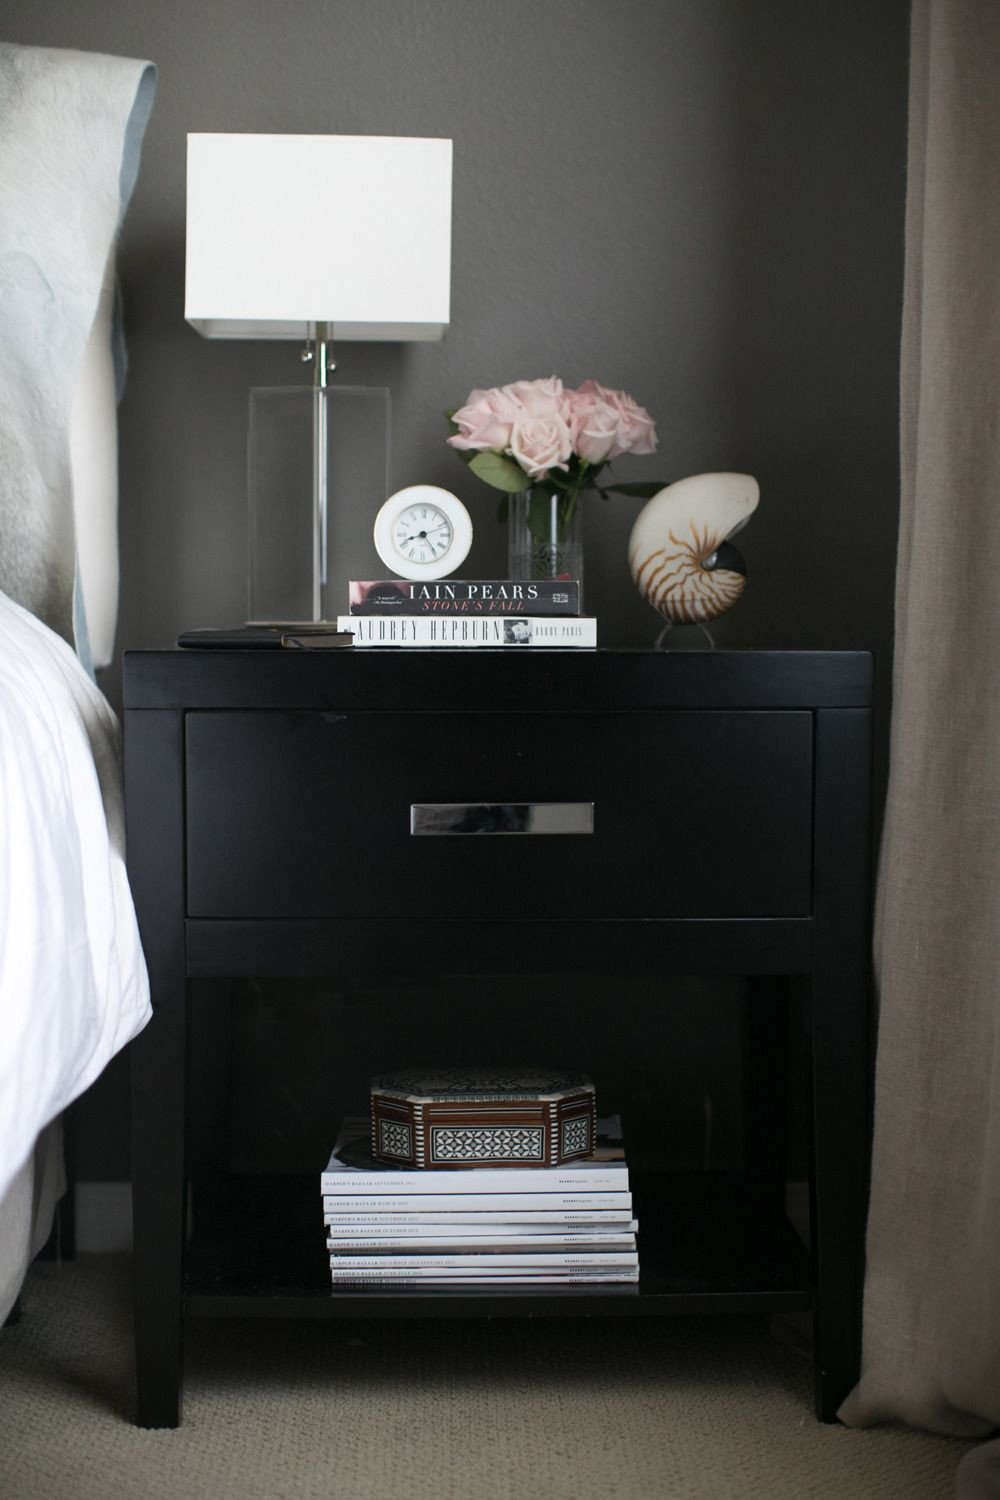 Side Table for Bedroom Inspirational Chic & Edgy Home Of Small Shop